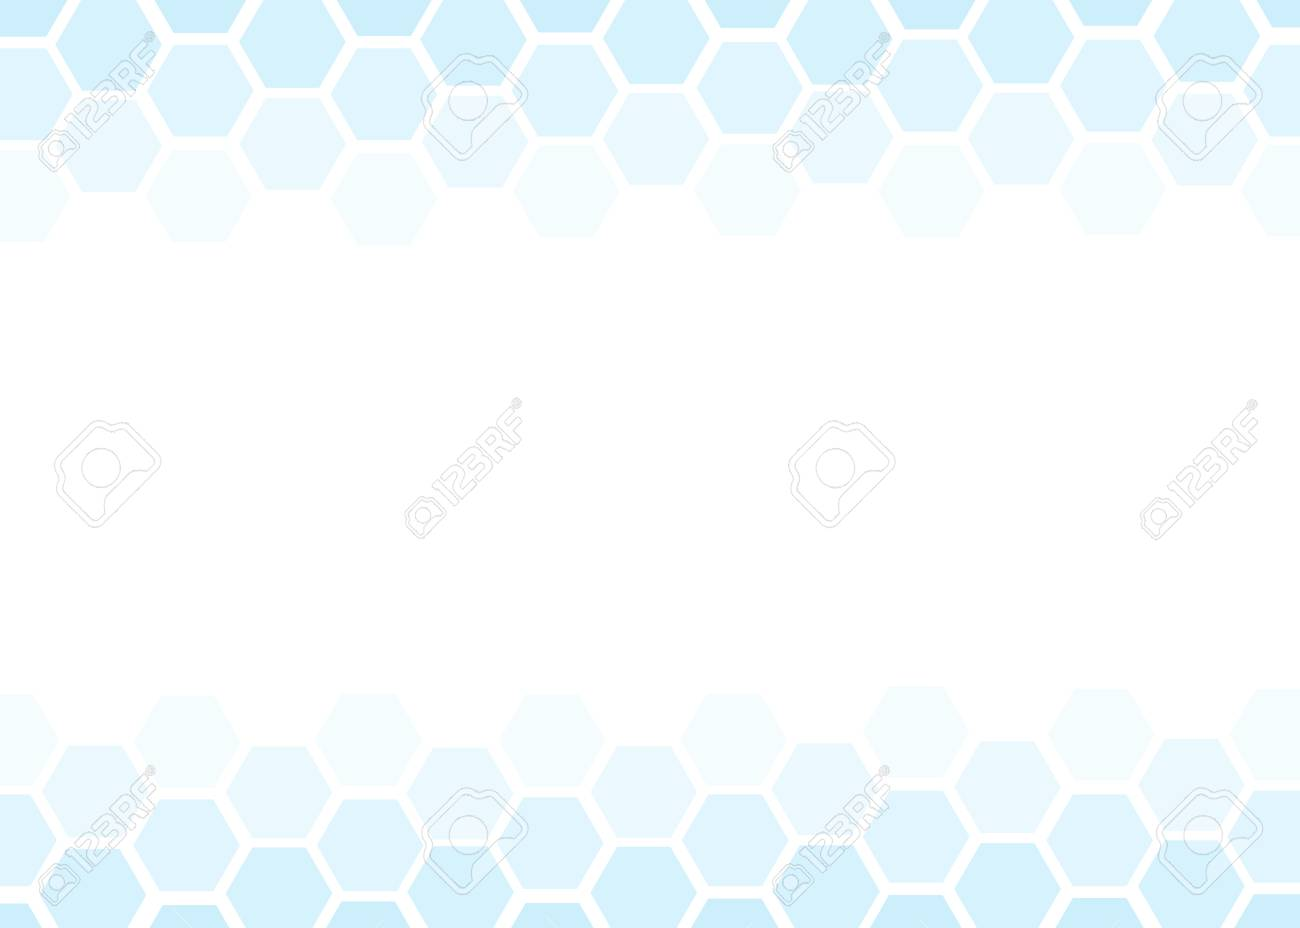 Blue Abstract Background Design For Business Vector Illustration